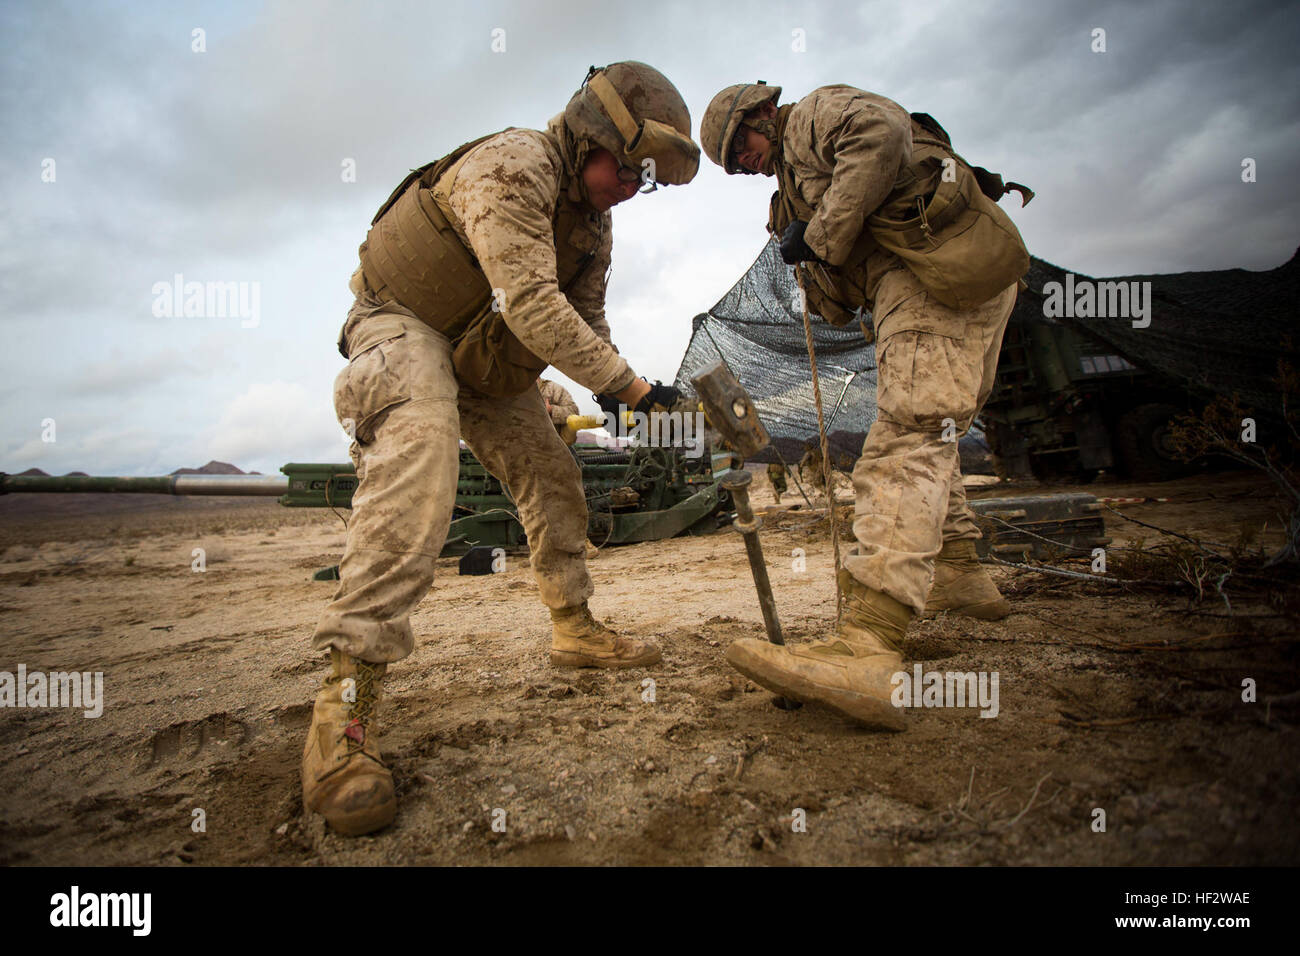 U.S. Marine Corps Cpl. Seth M. Selvidge (left), and Cpl. Frank T. Esparza (right) with Alpha Battery, 1st Battalion, - Stock Image